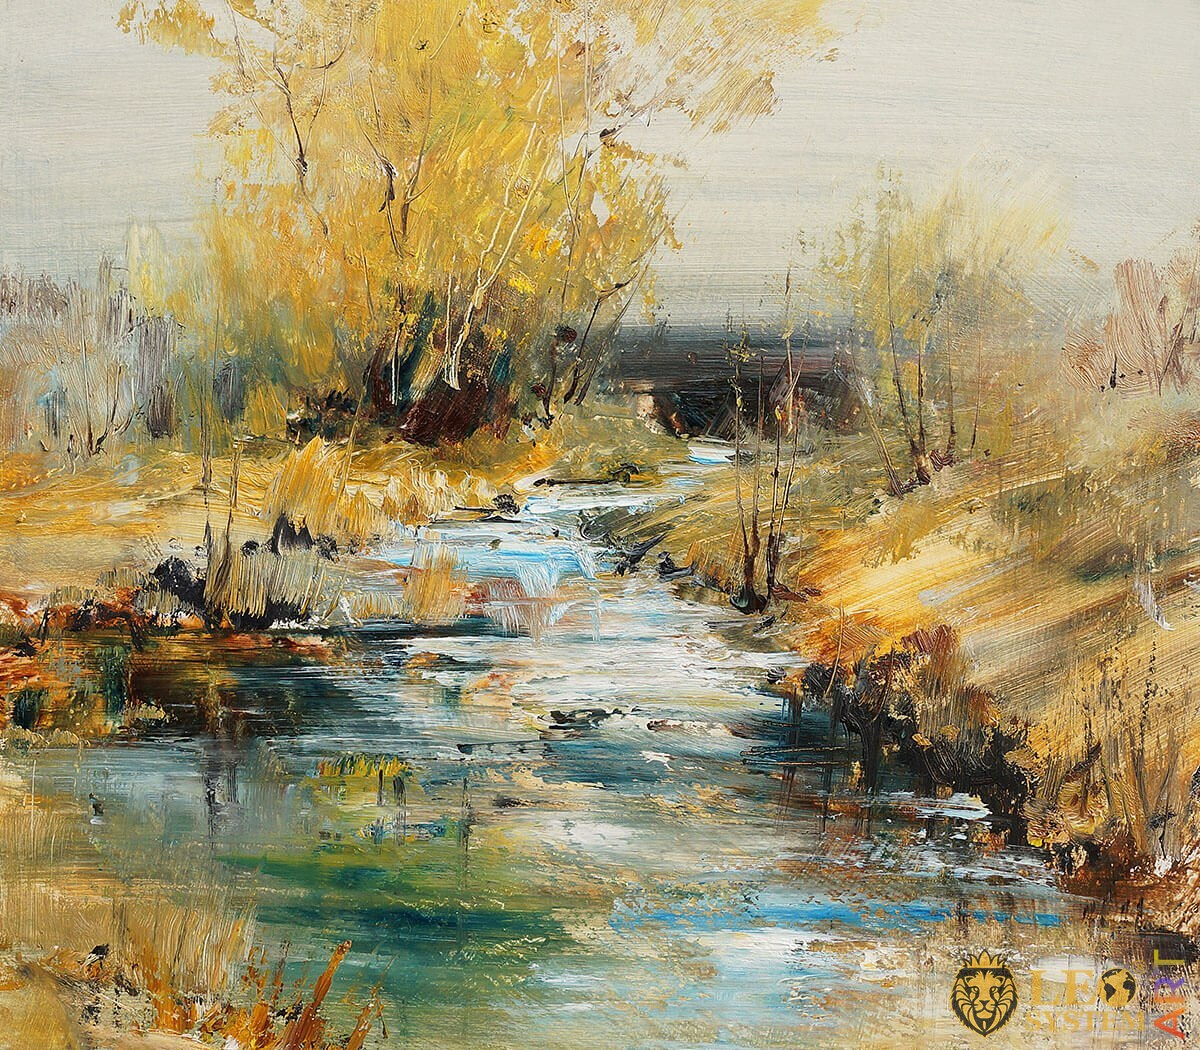 Babbling streams in the forest, original painting